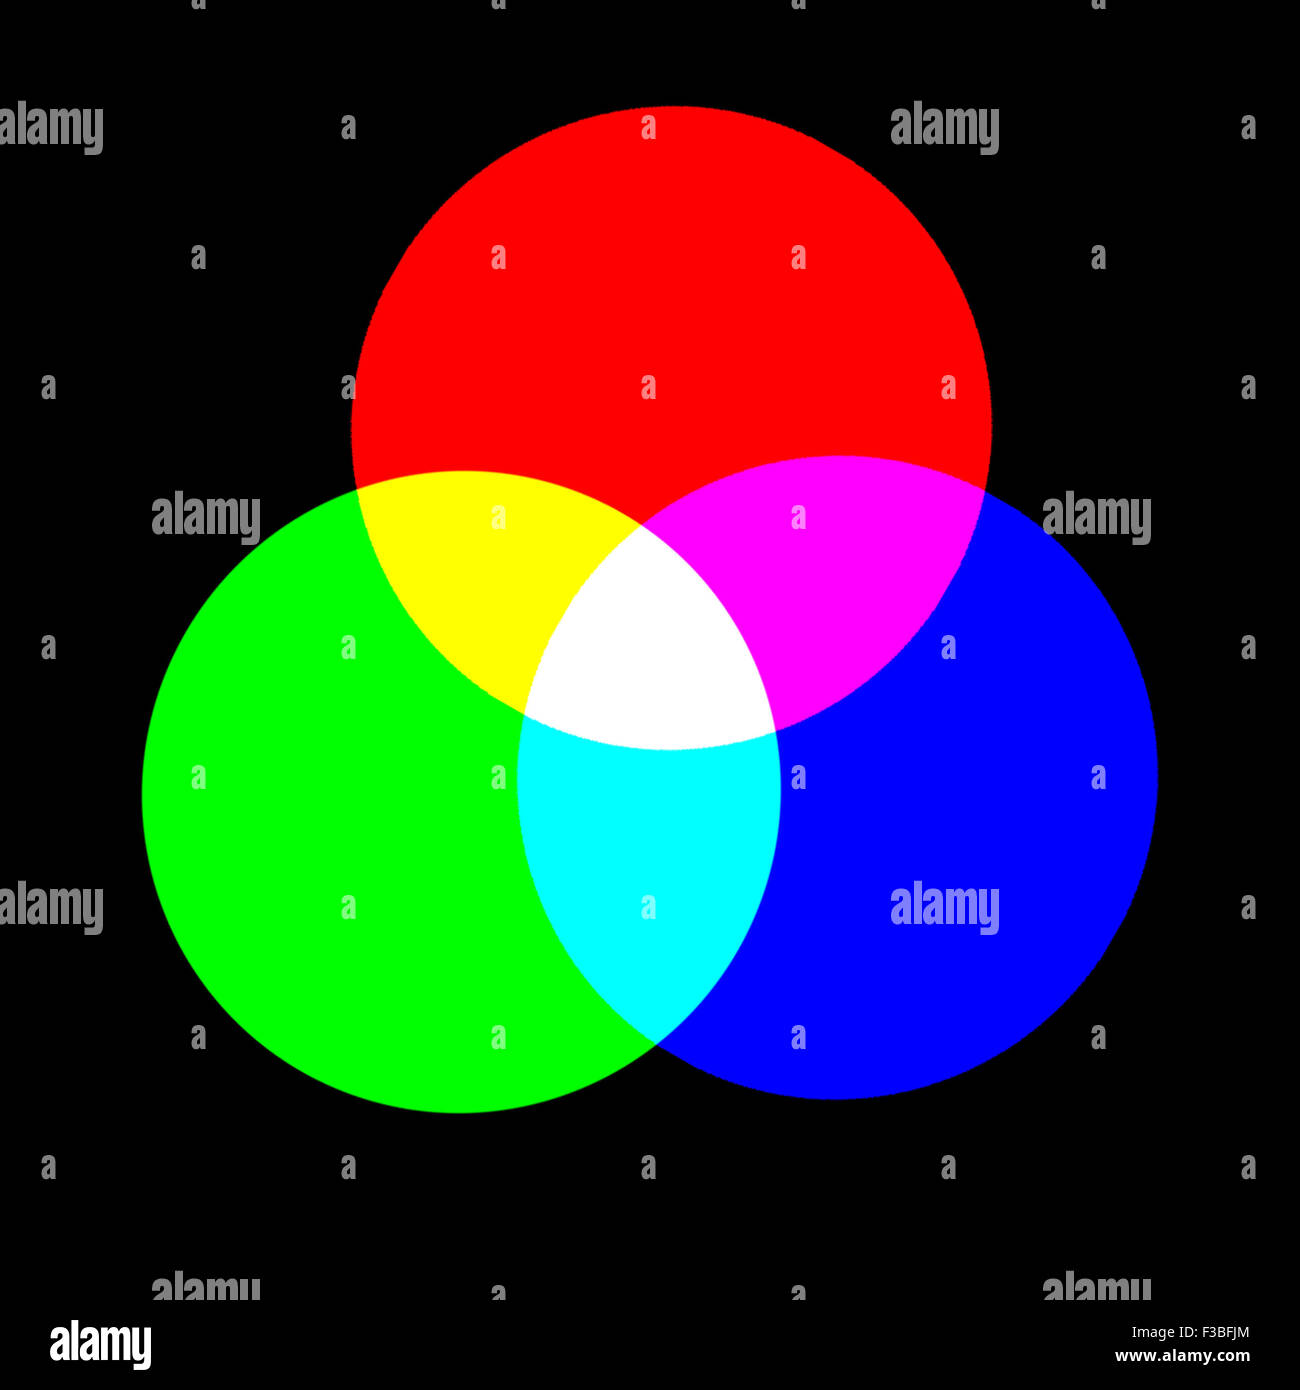 Color Wheel Made Up Of Three Primary Colors Red Green And Blue Overlapping To